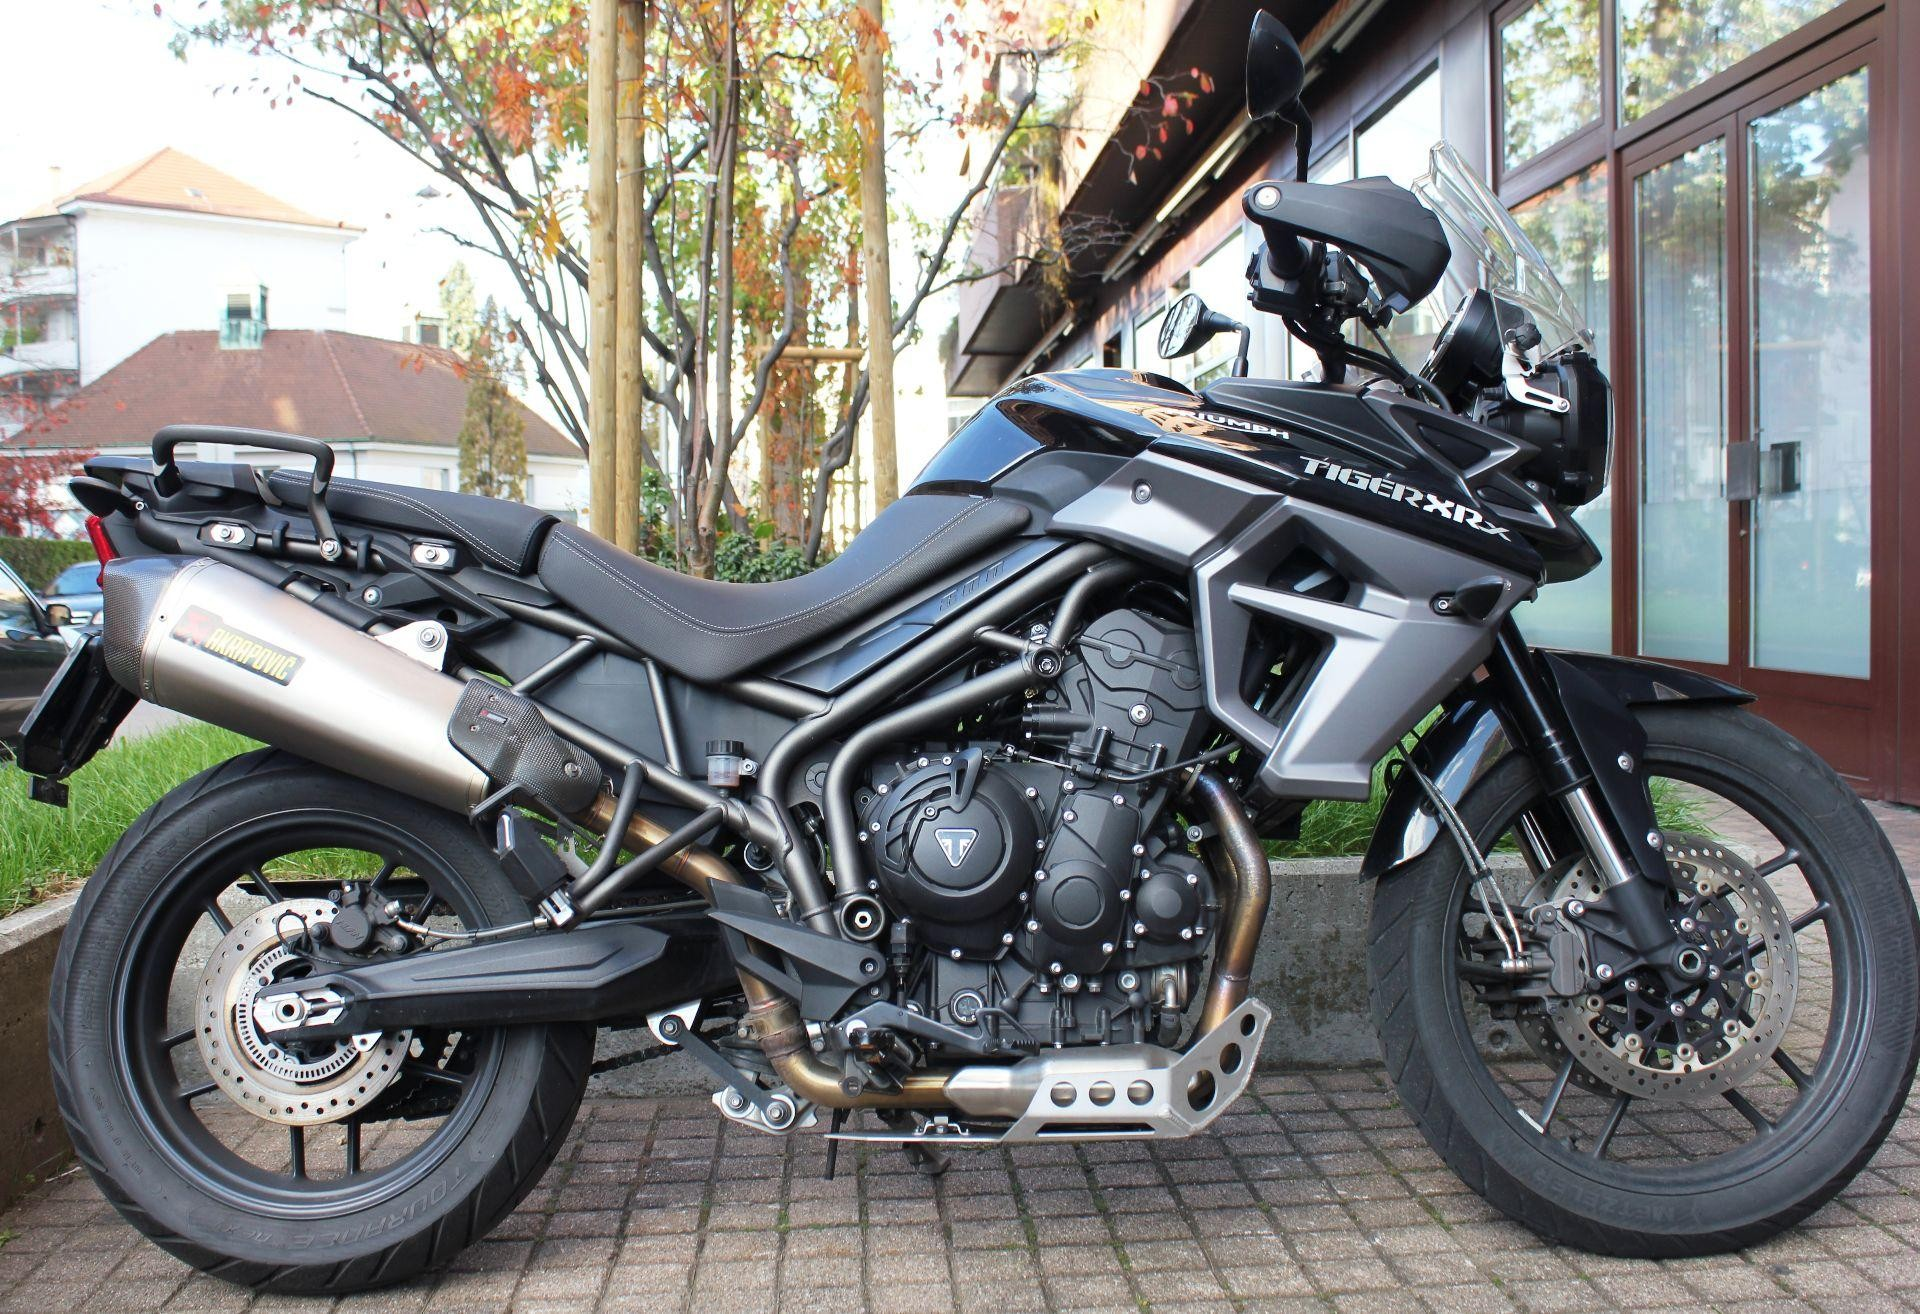 moto occasions acheter triumph tiger 800 xrx abs phoenix basel ag basel. Black Bedroom Furniture Sets. Home Design Ideas